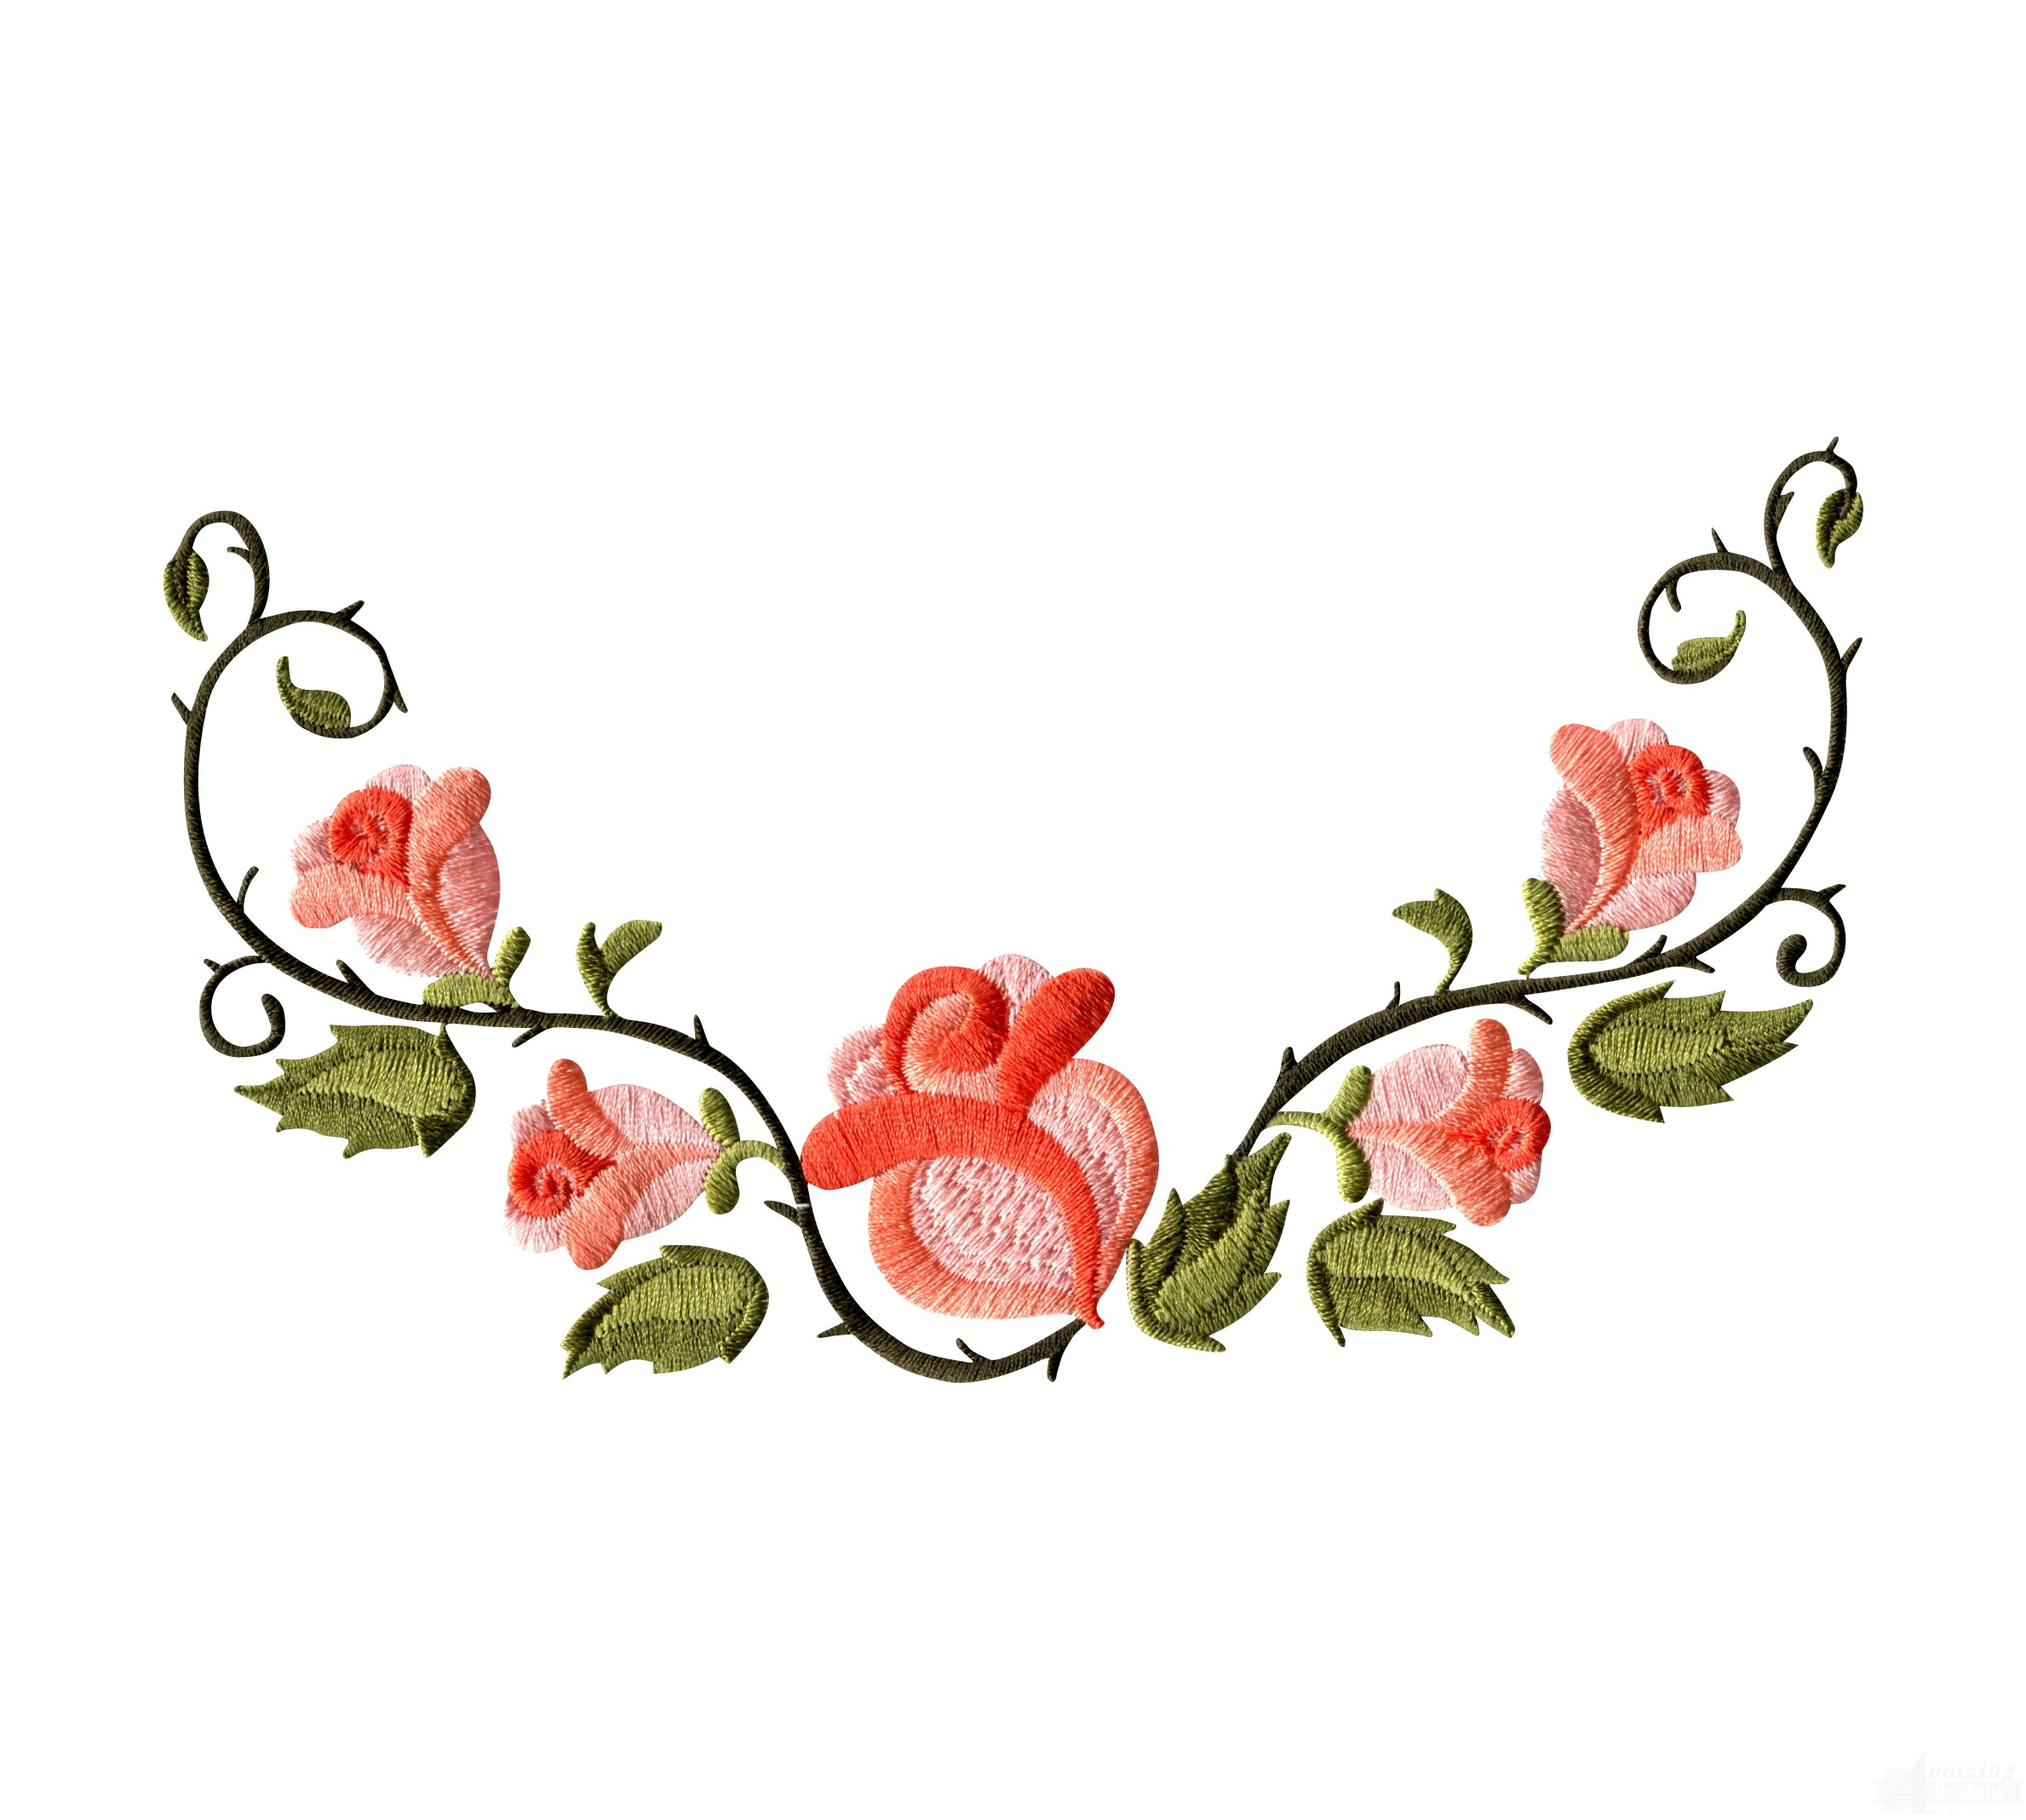 Rose floral border clipart freeuse library Free Rose Flower Borders, Download Free Clip Art, Free Clip ... freeuse library